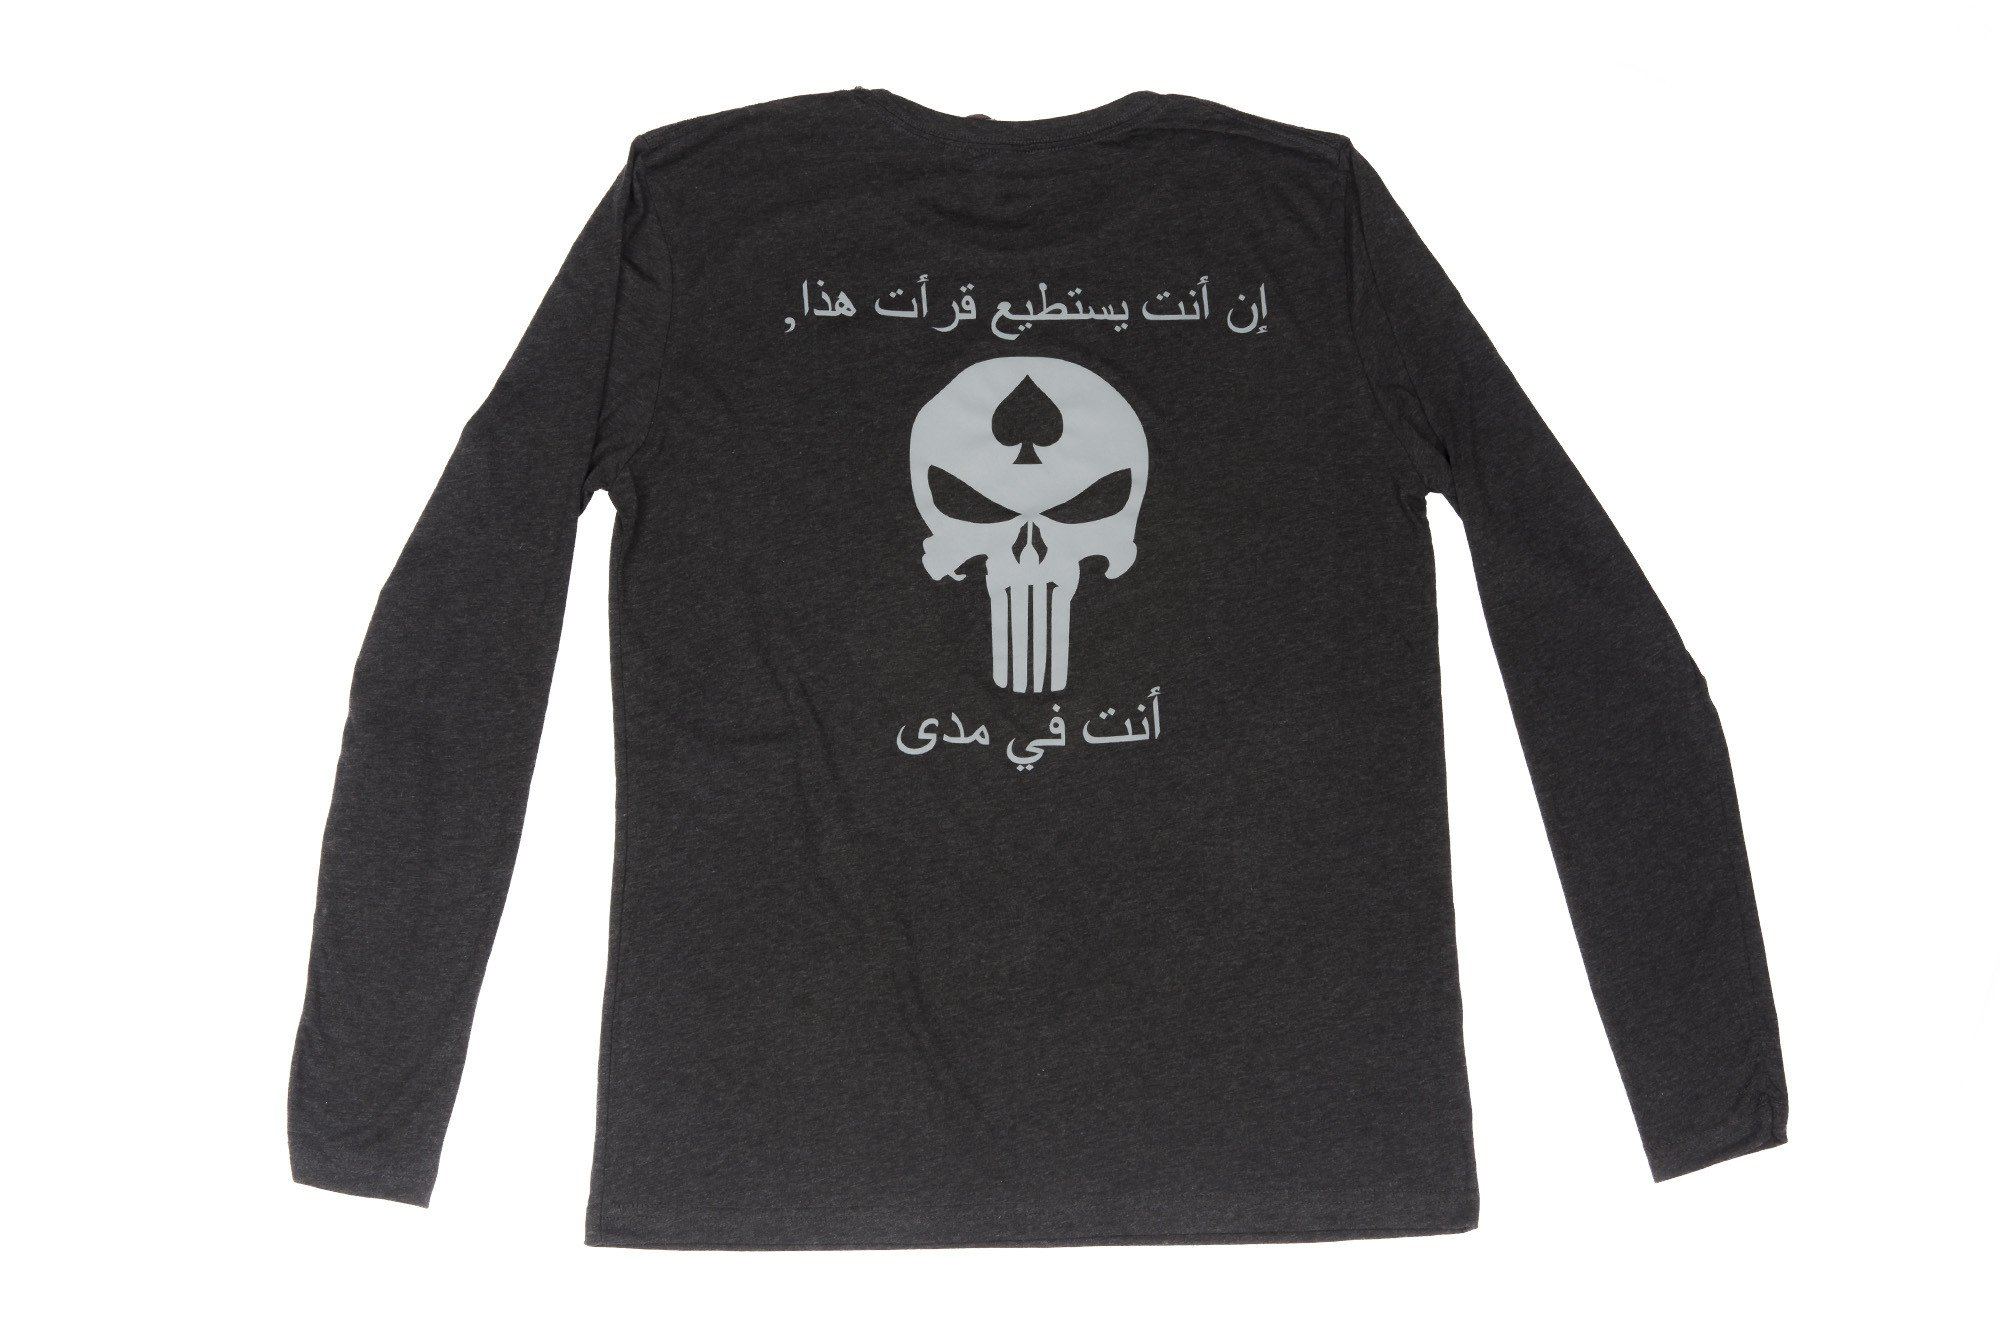 721671ba88b4 ... Punisher Long Sleeve. prev